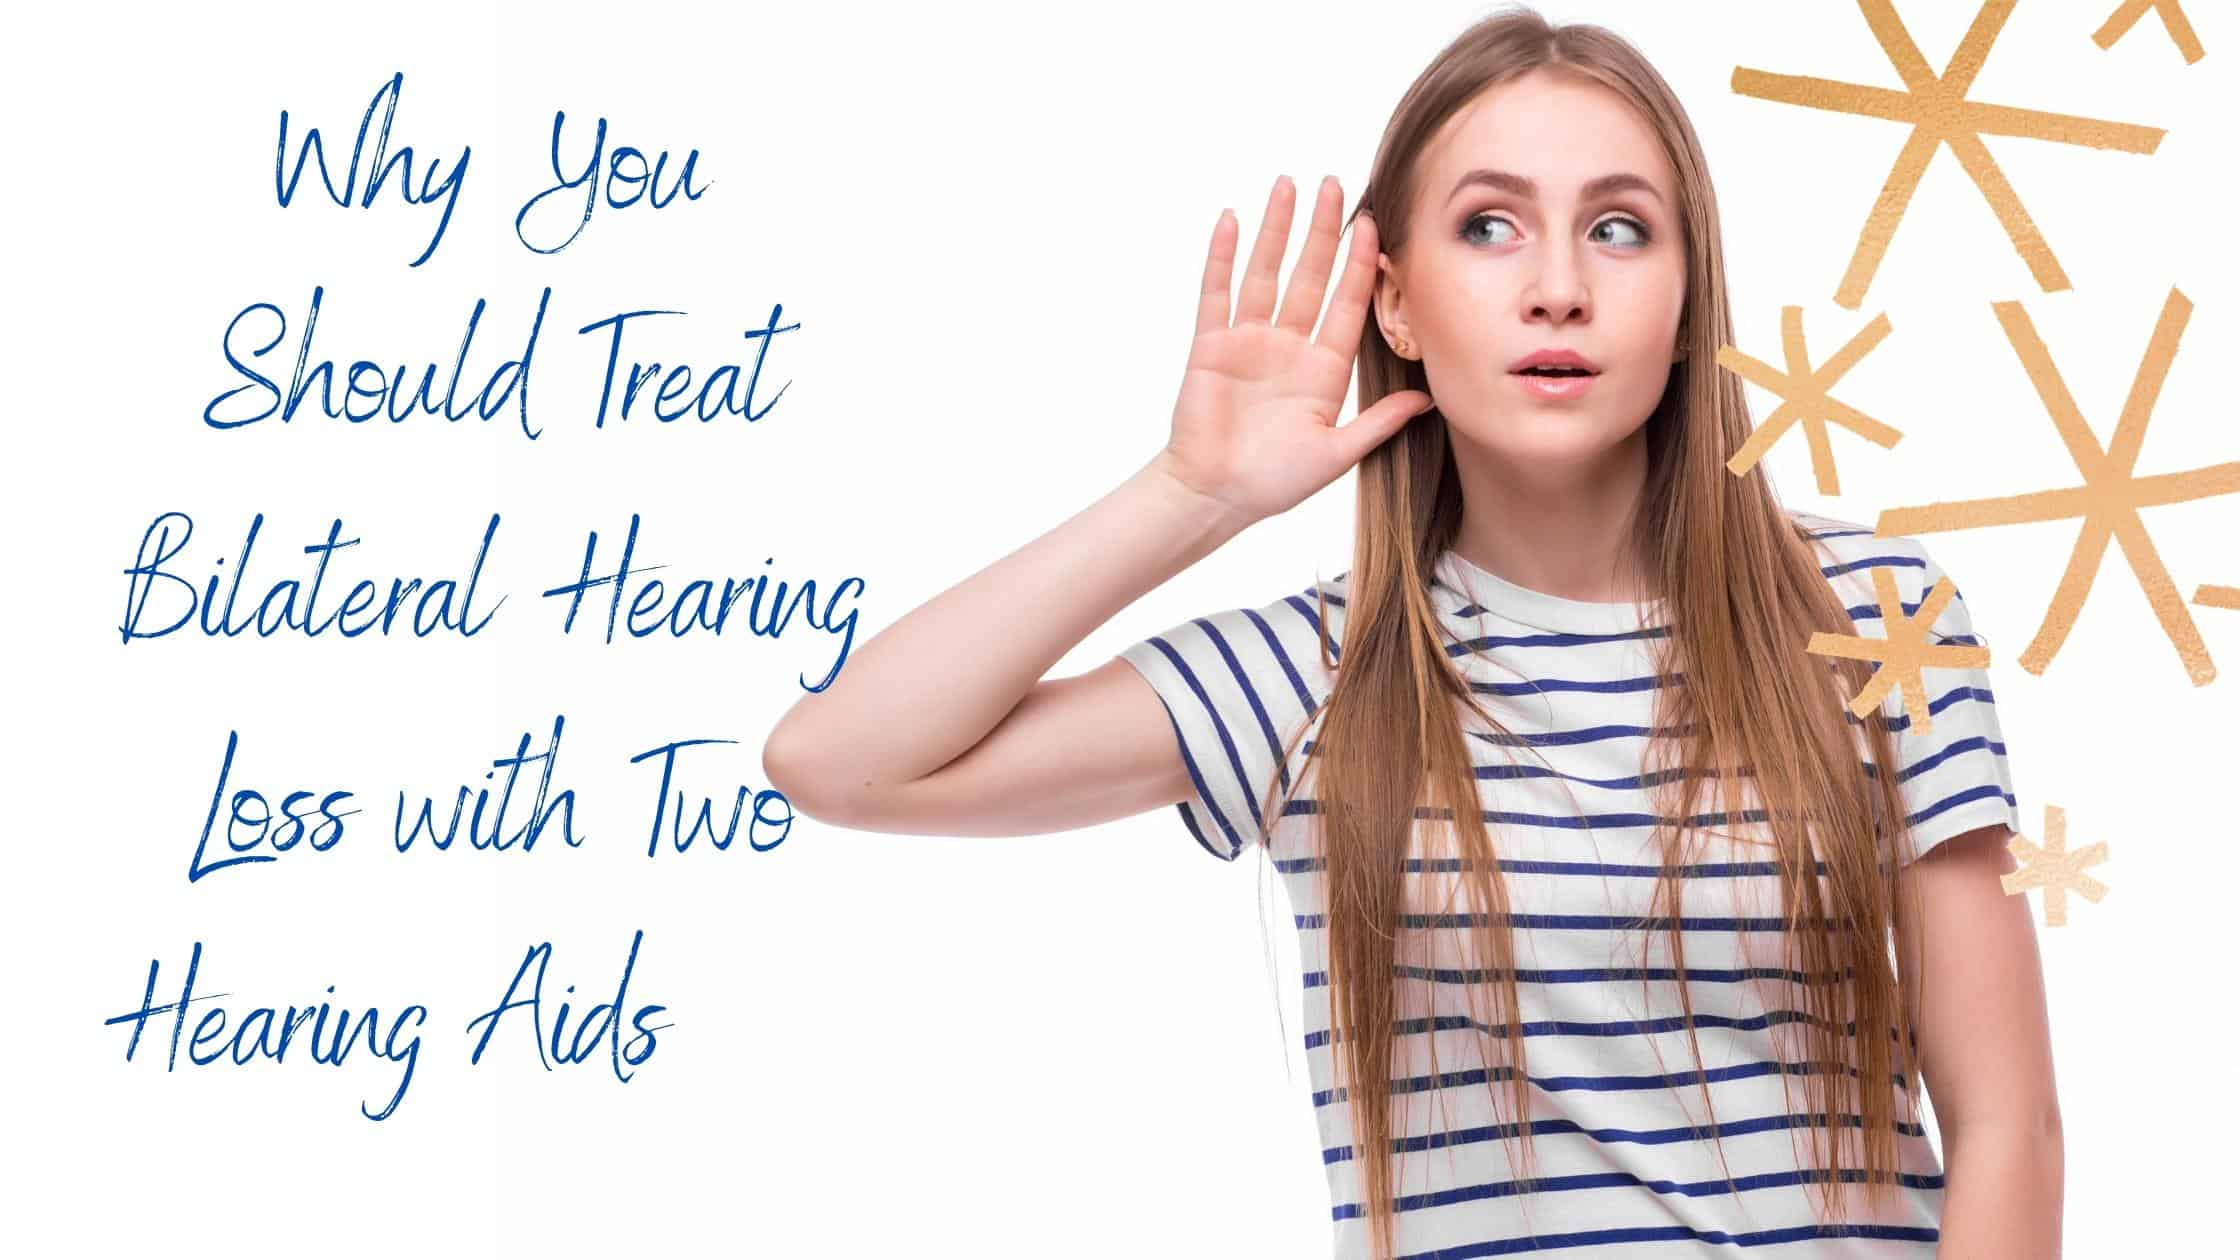 Why You Should Treat Bilateral Hearing Loss with Two Hearing Aids